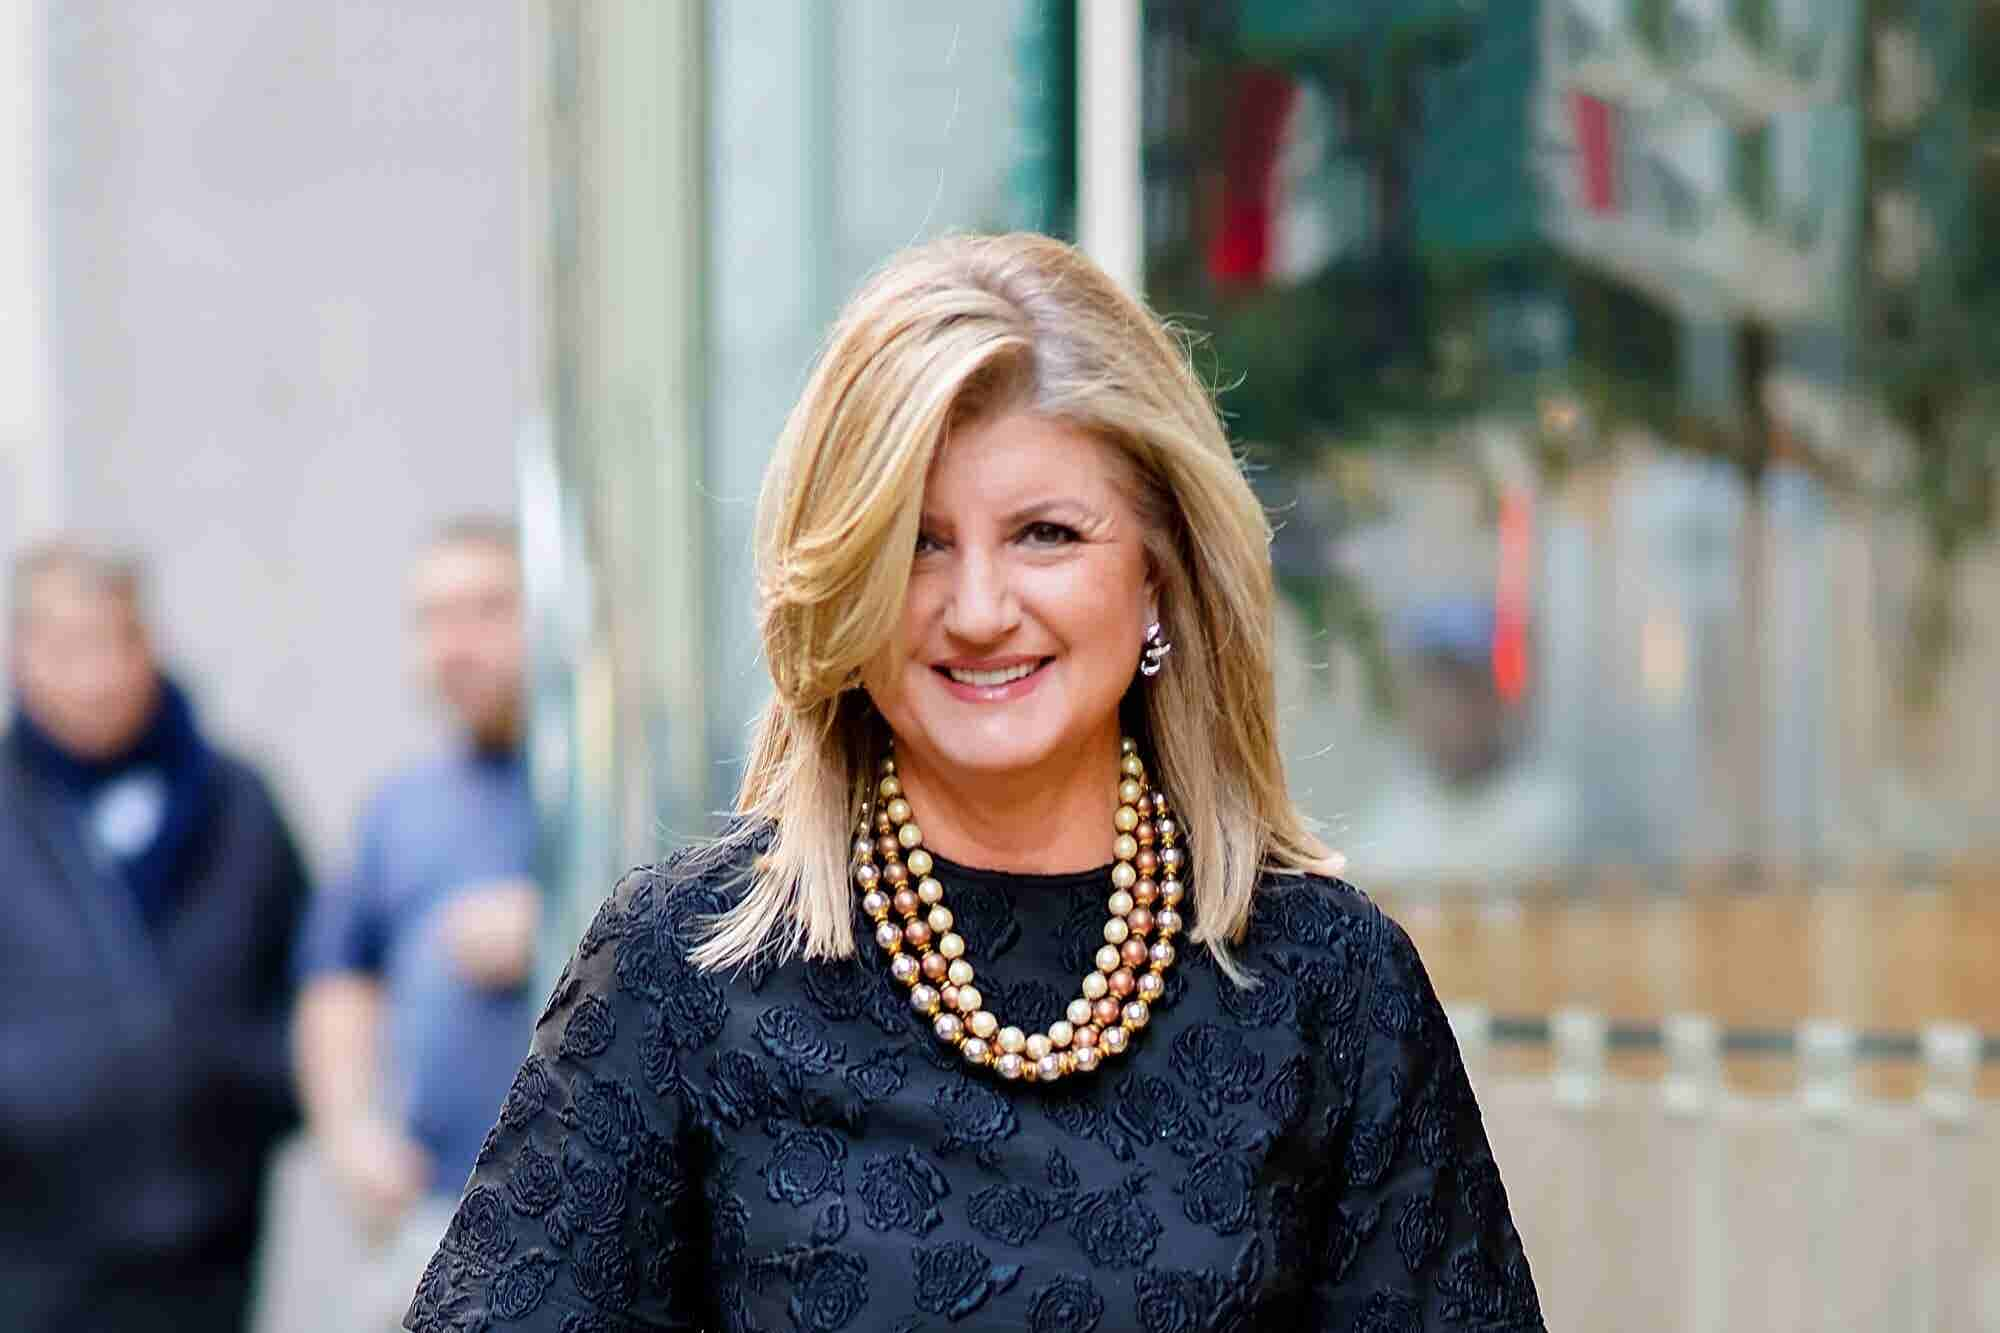 Arianna Huffington Thought 'HuffPost' Would Be Her 'Last Chapter.' Was She Ever Wrong.